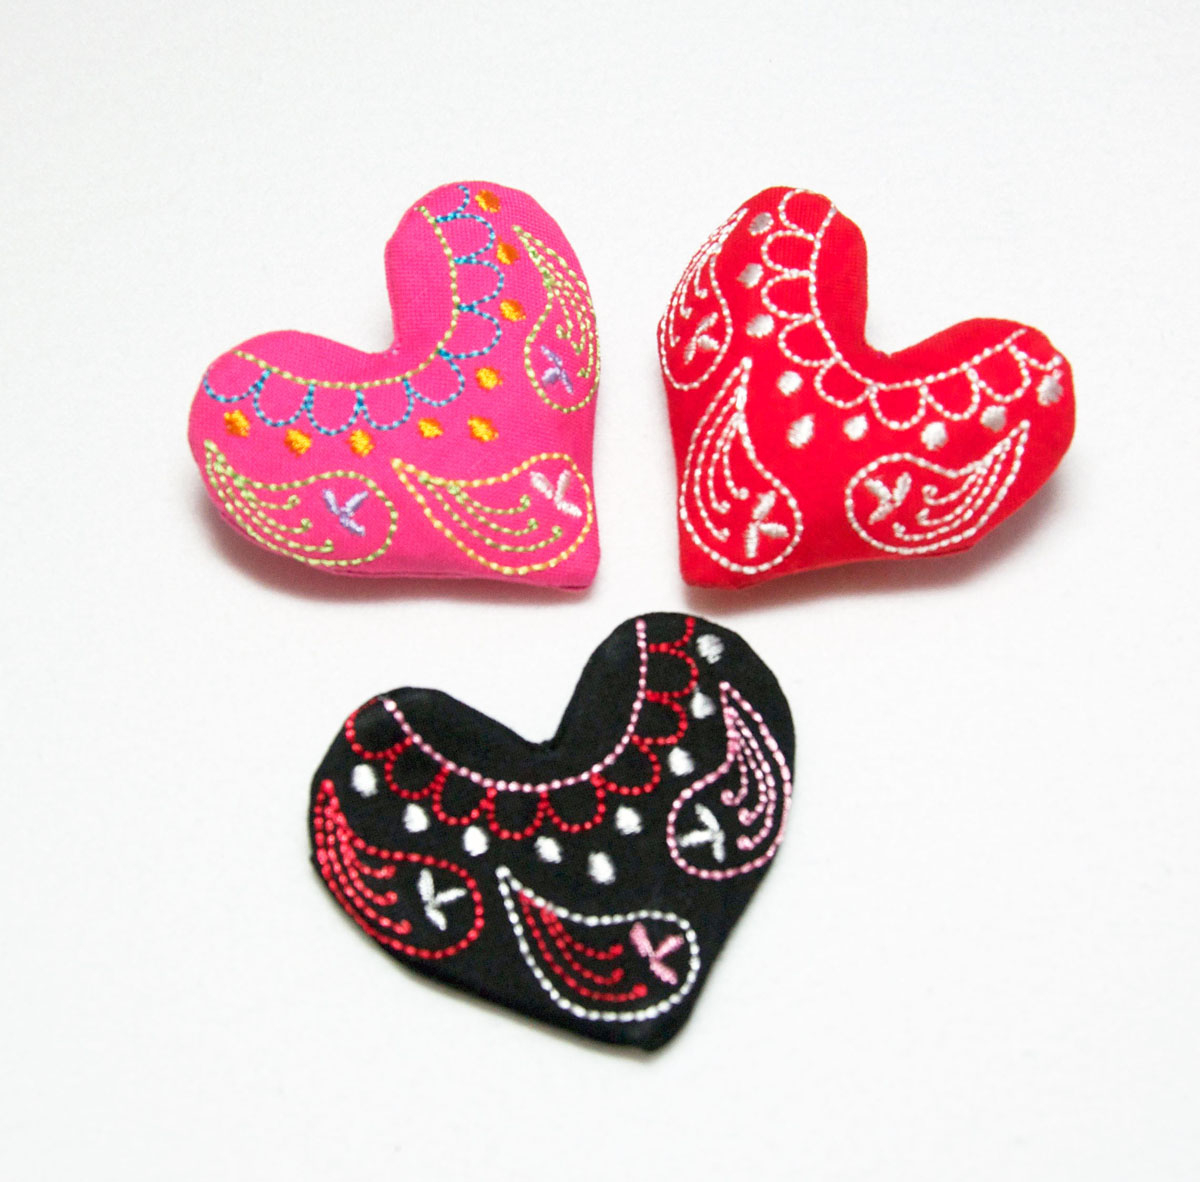 How To Make An Embroidery Pattern Embroidered Heart Pin And Free Embroidery Design Weallsew